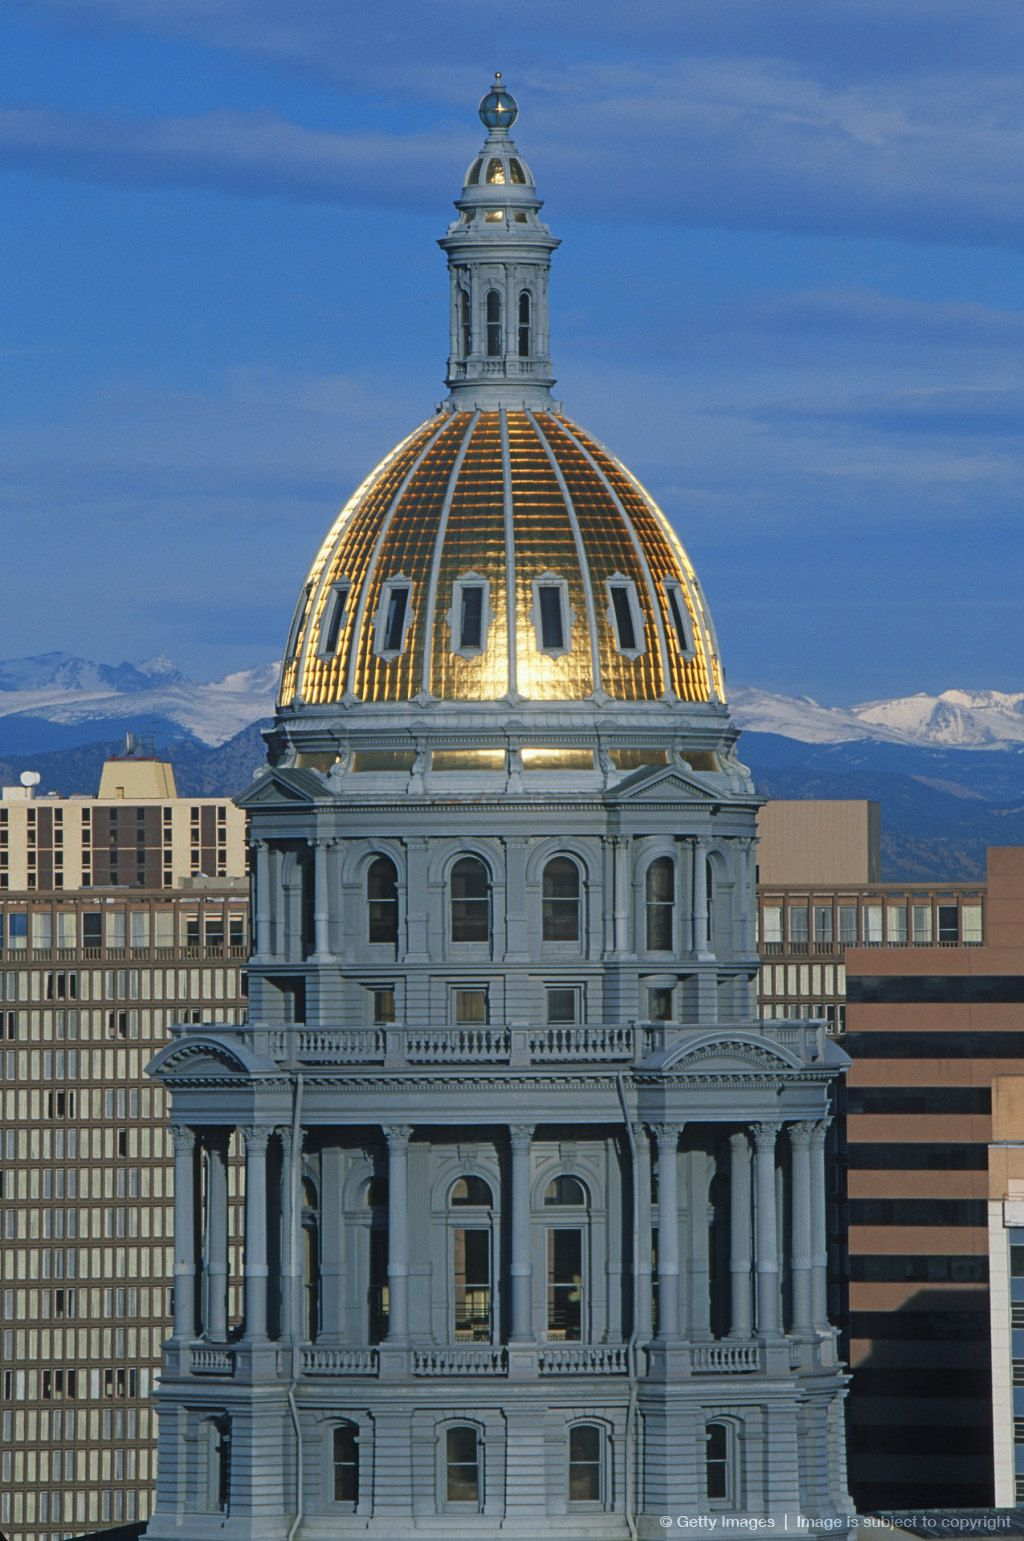 State Capitol of Colorado, Denver went on a tour of Capitol/Dome when one of my sons classes 35 + years got to visit